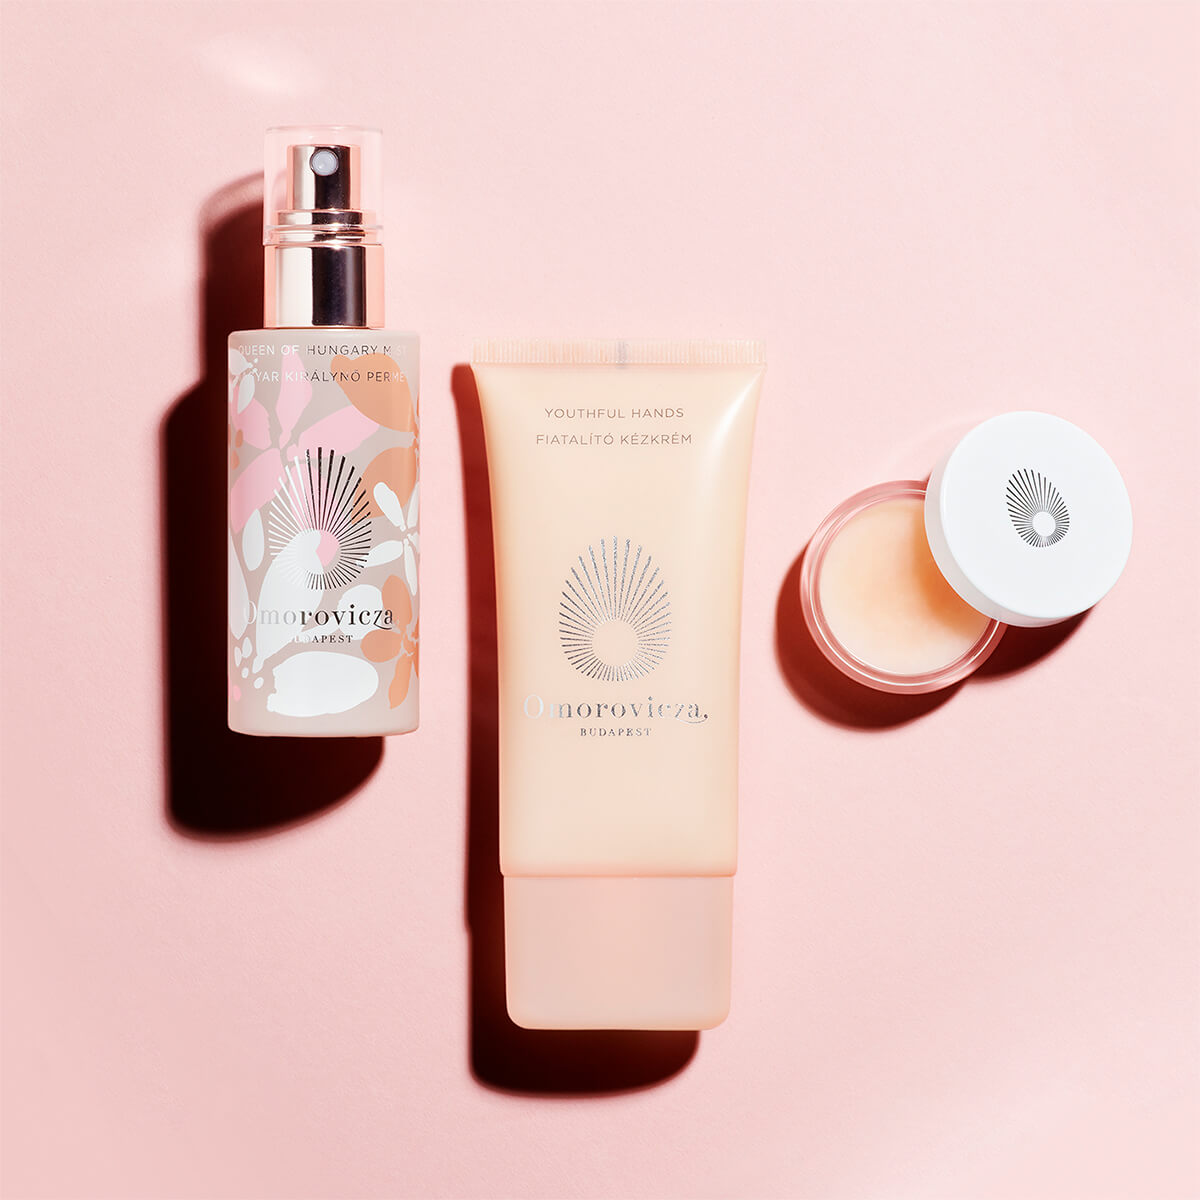 Youthful hands, lip gloss and queen of hungary mist